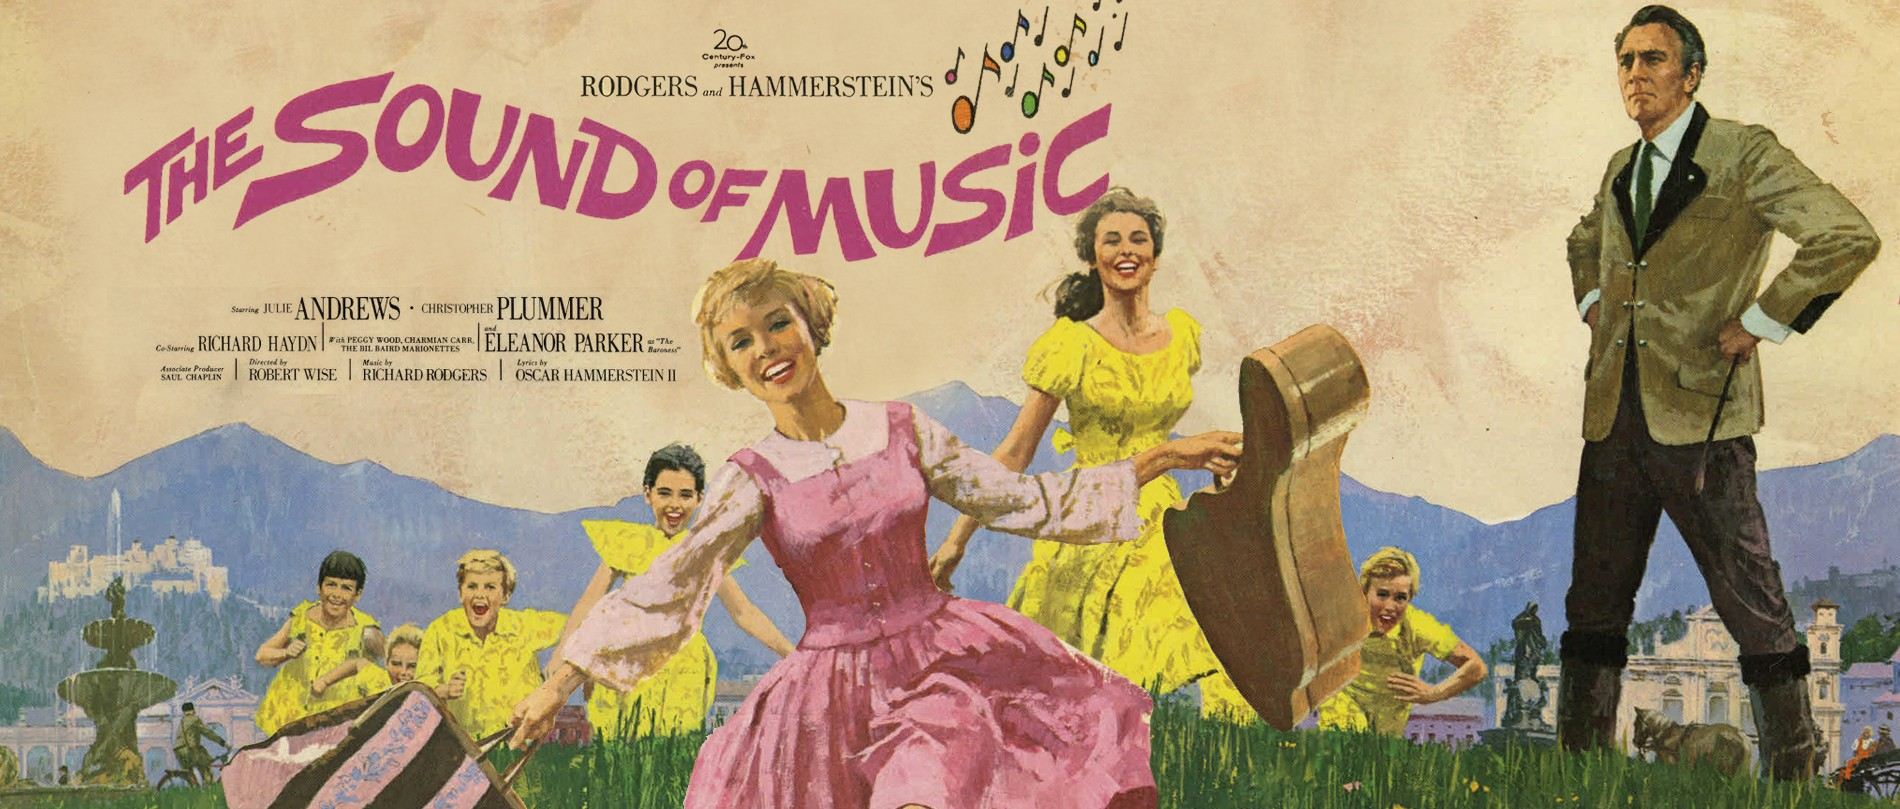 the sound of music.jpg